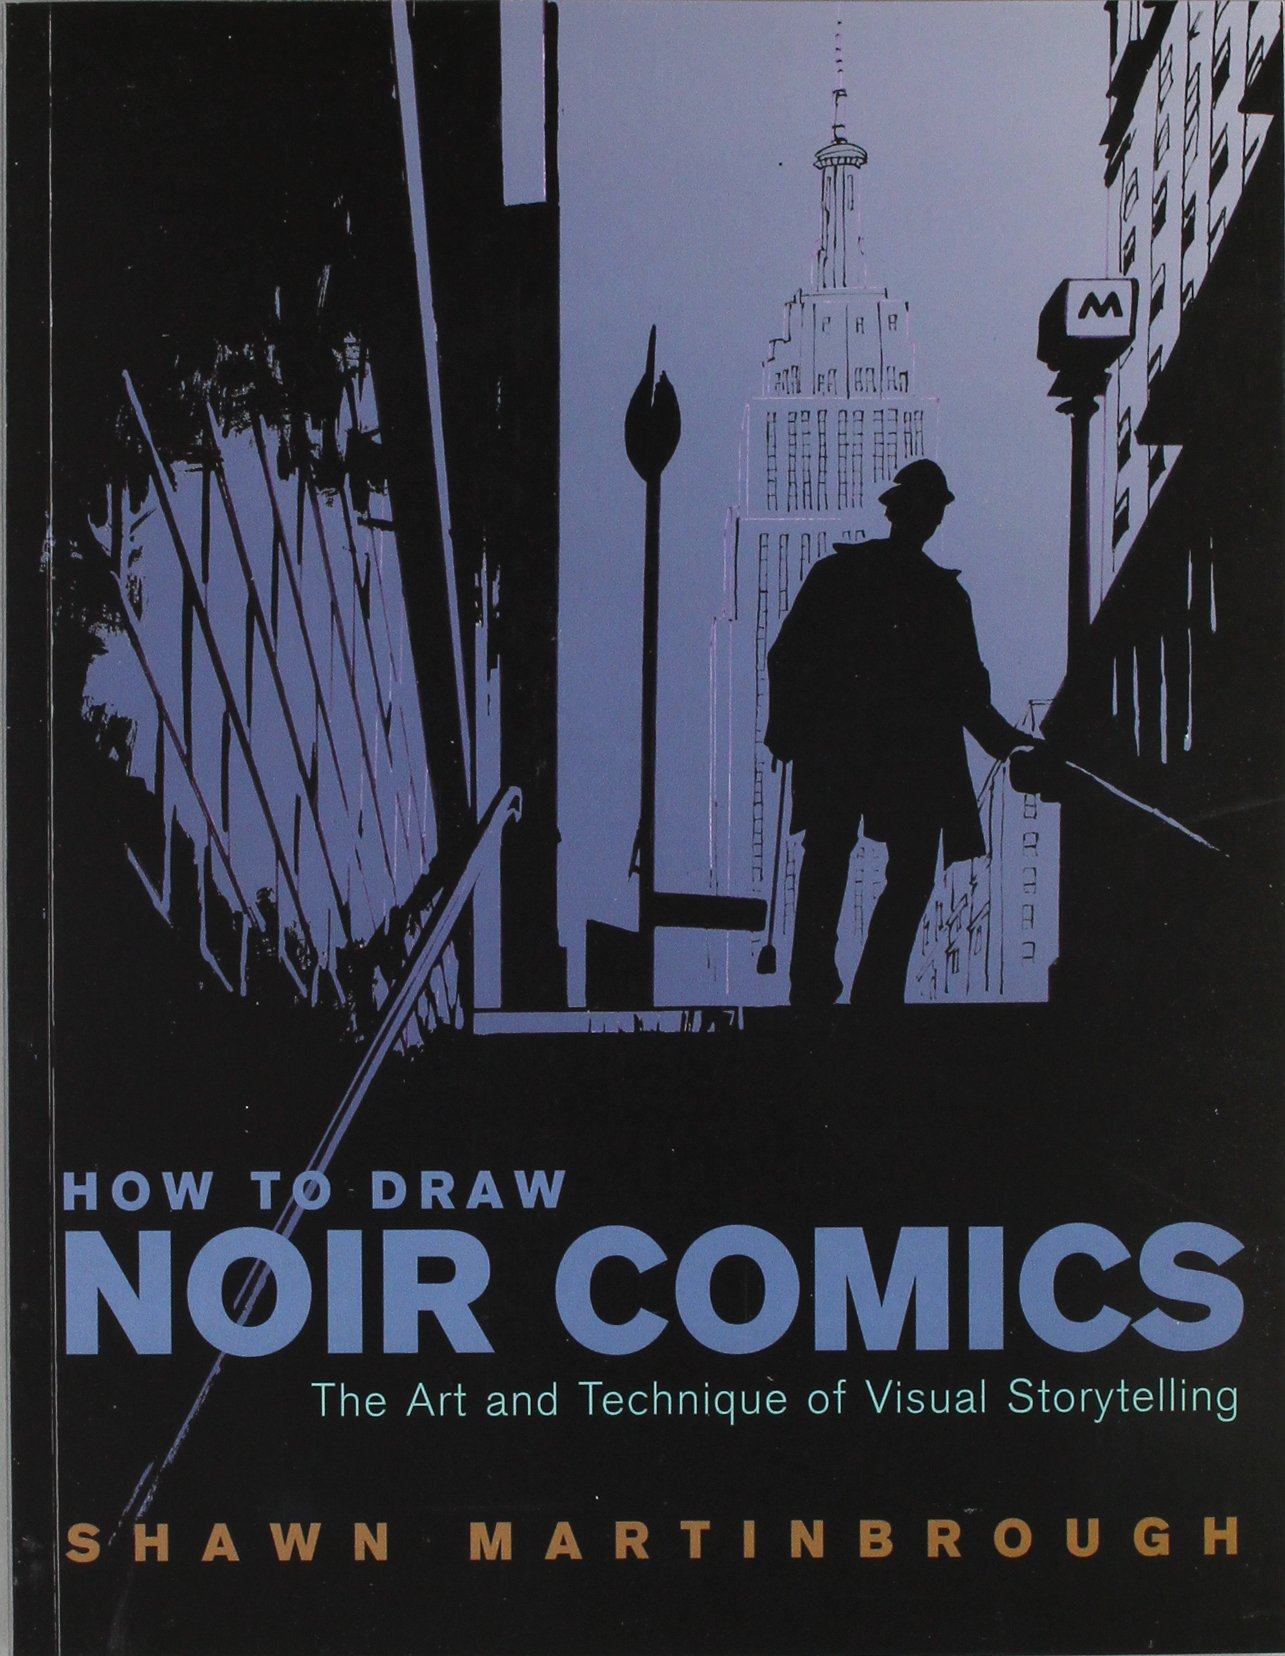 Cutting Edge Drawing How to Draw Noir Comics The